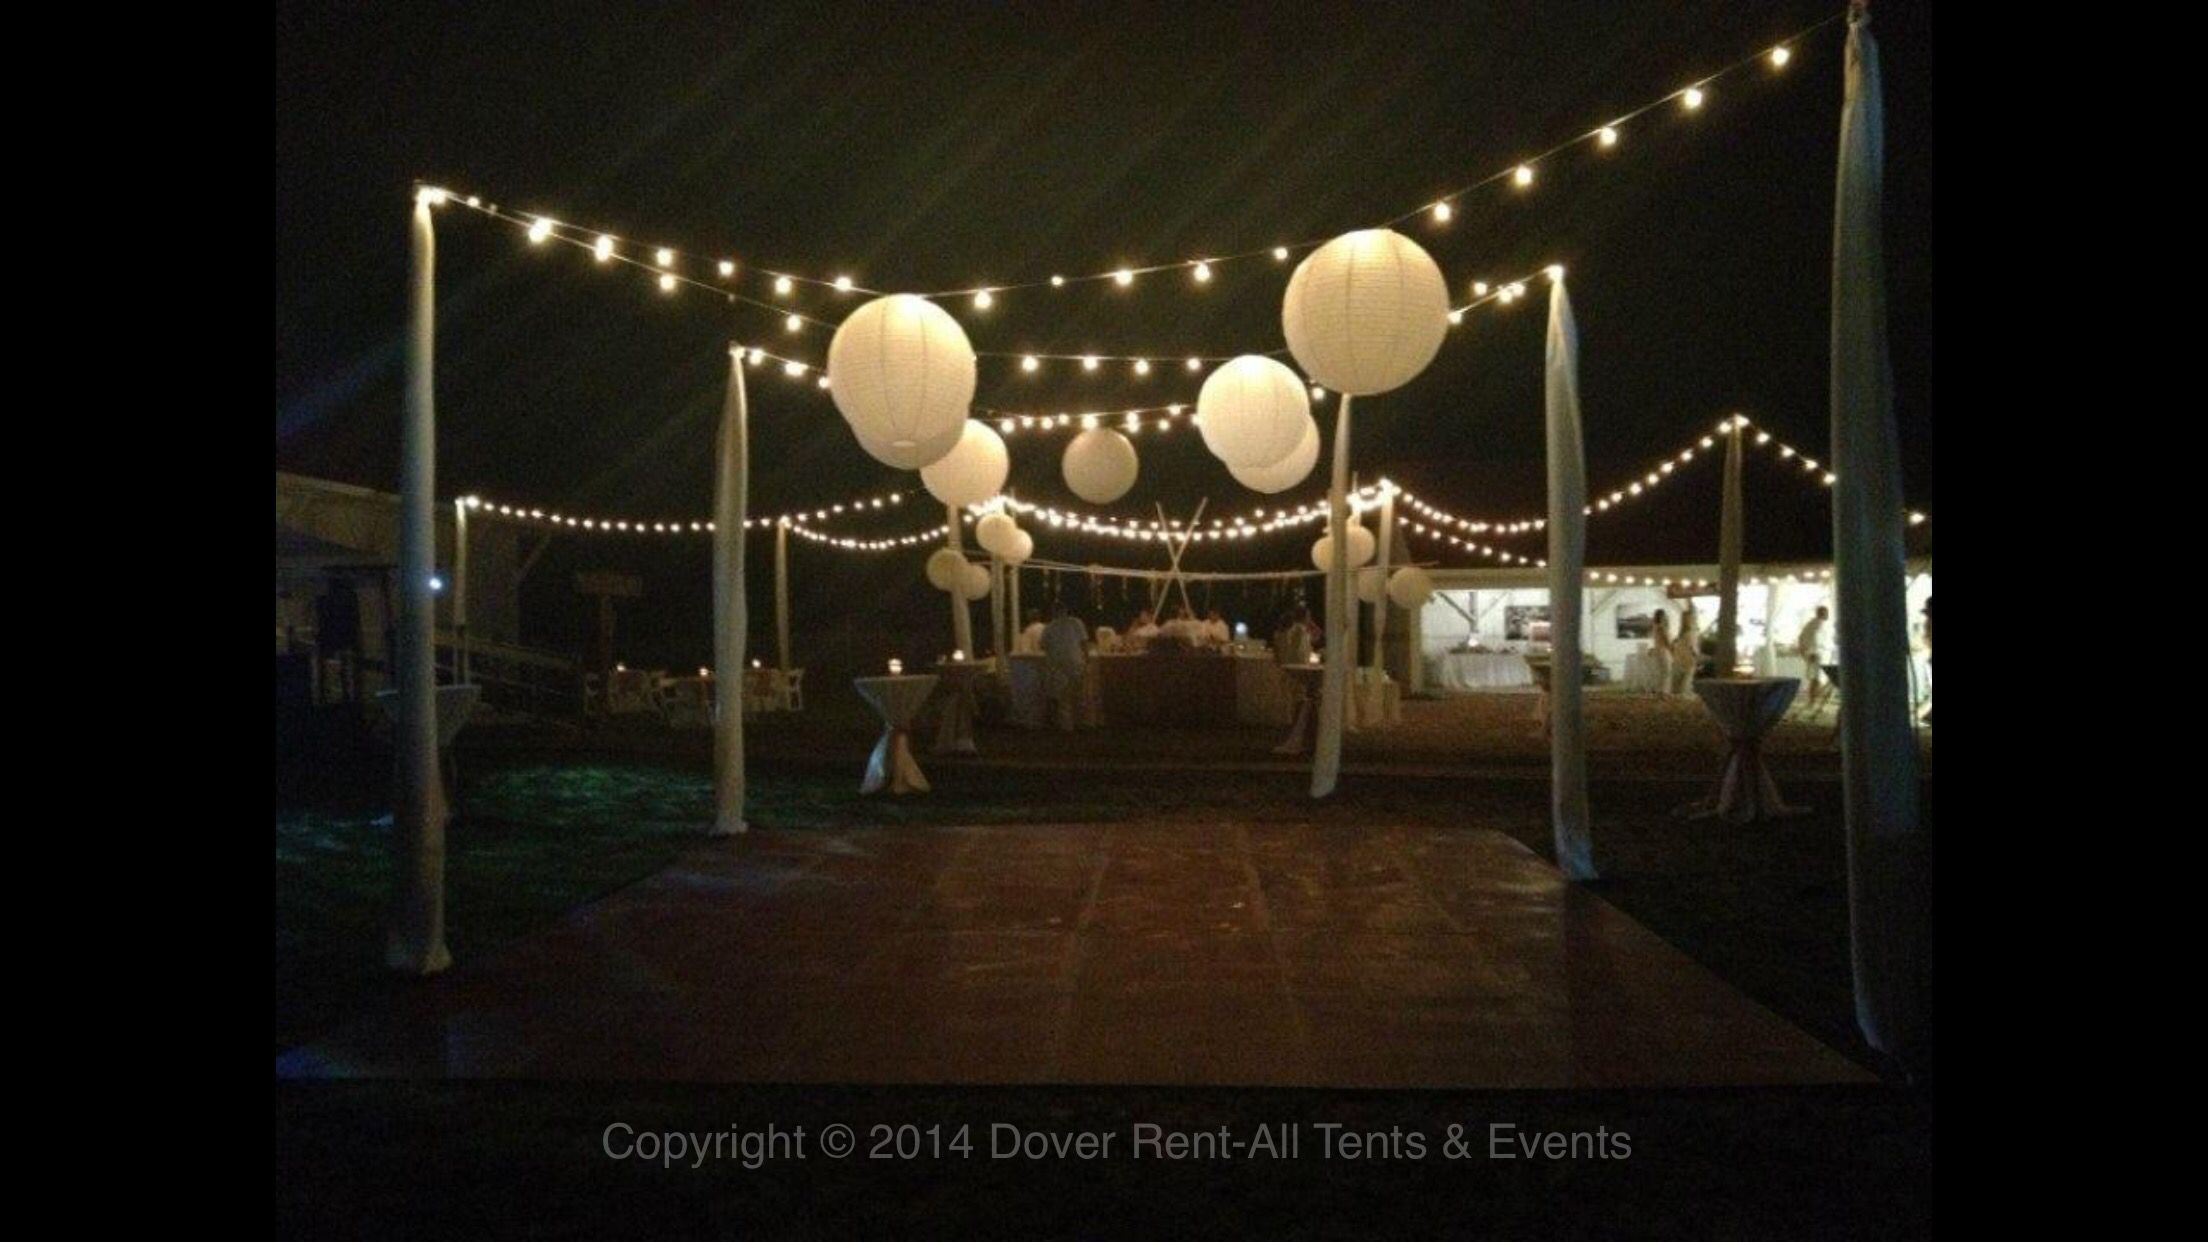 dover de tree lighting 2014. outdoor wedding lighting, event decor, bistro lights, paper lanterns. dover de tree lighting 2014 h